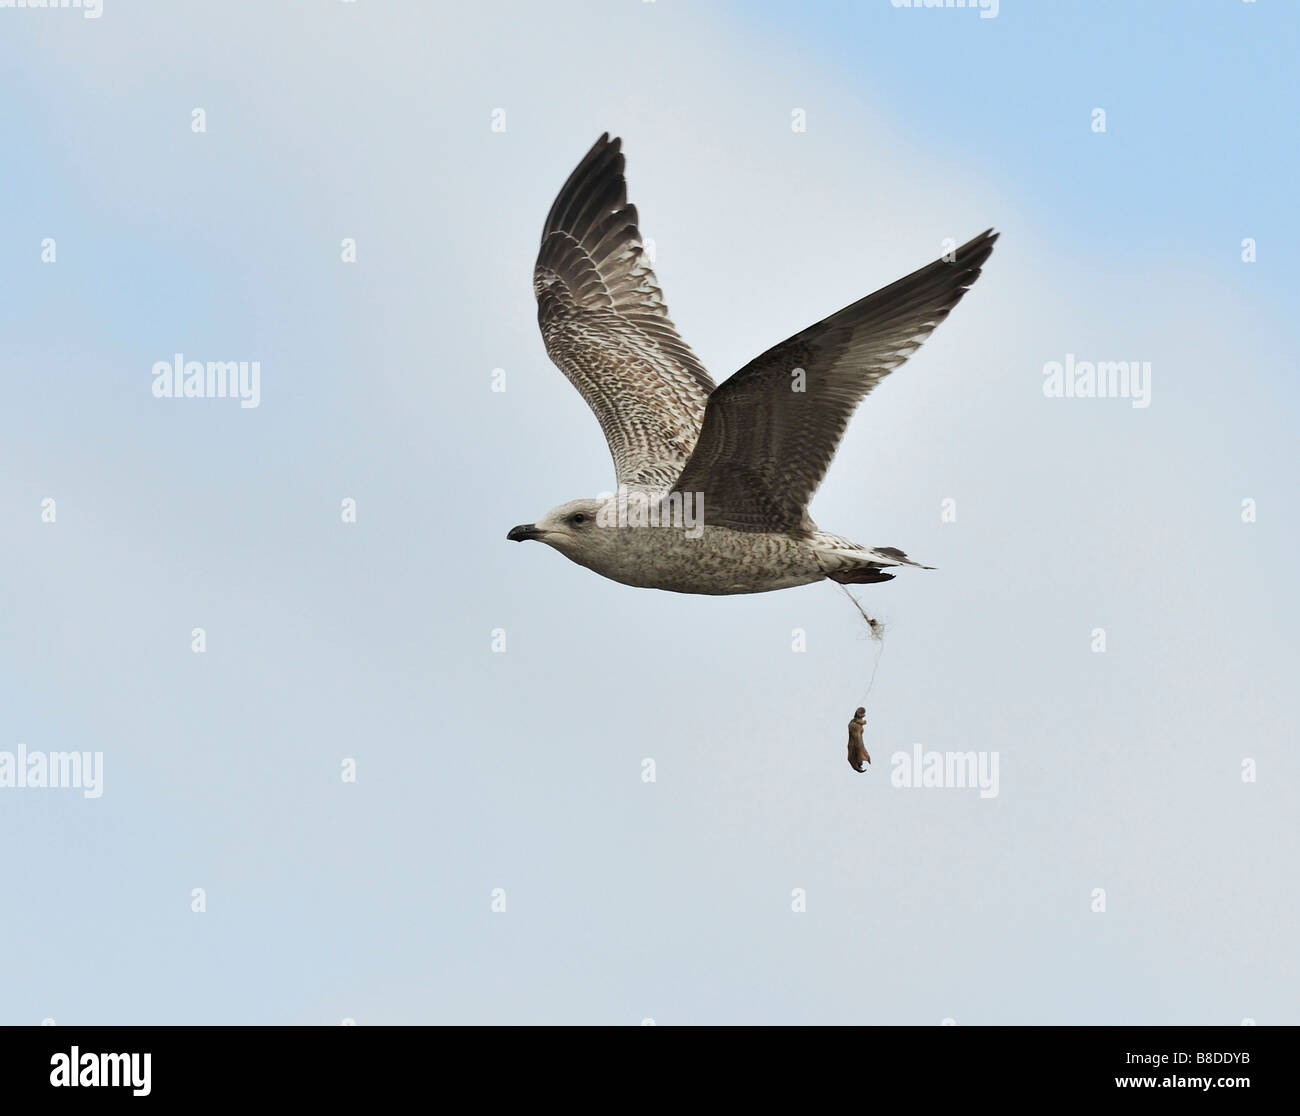 Seagull, fishing line amputated its foot. - Stock Image